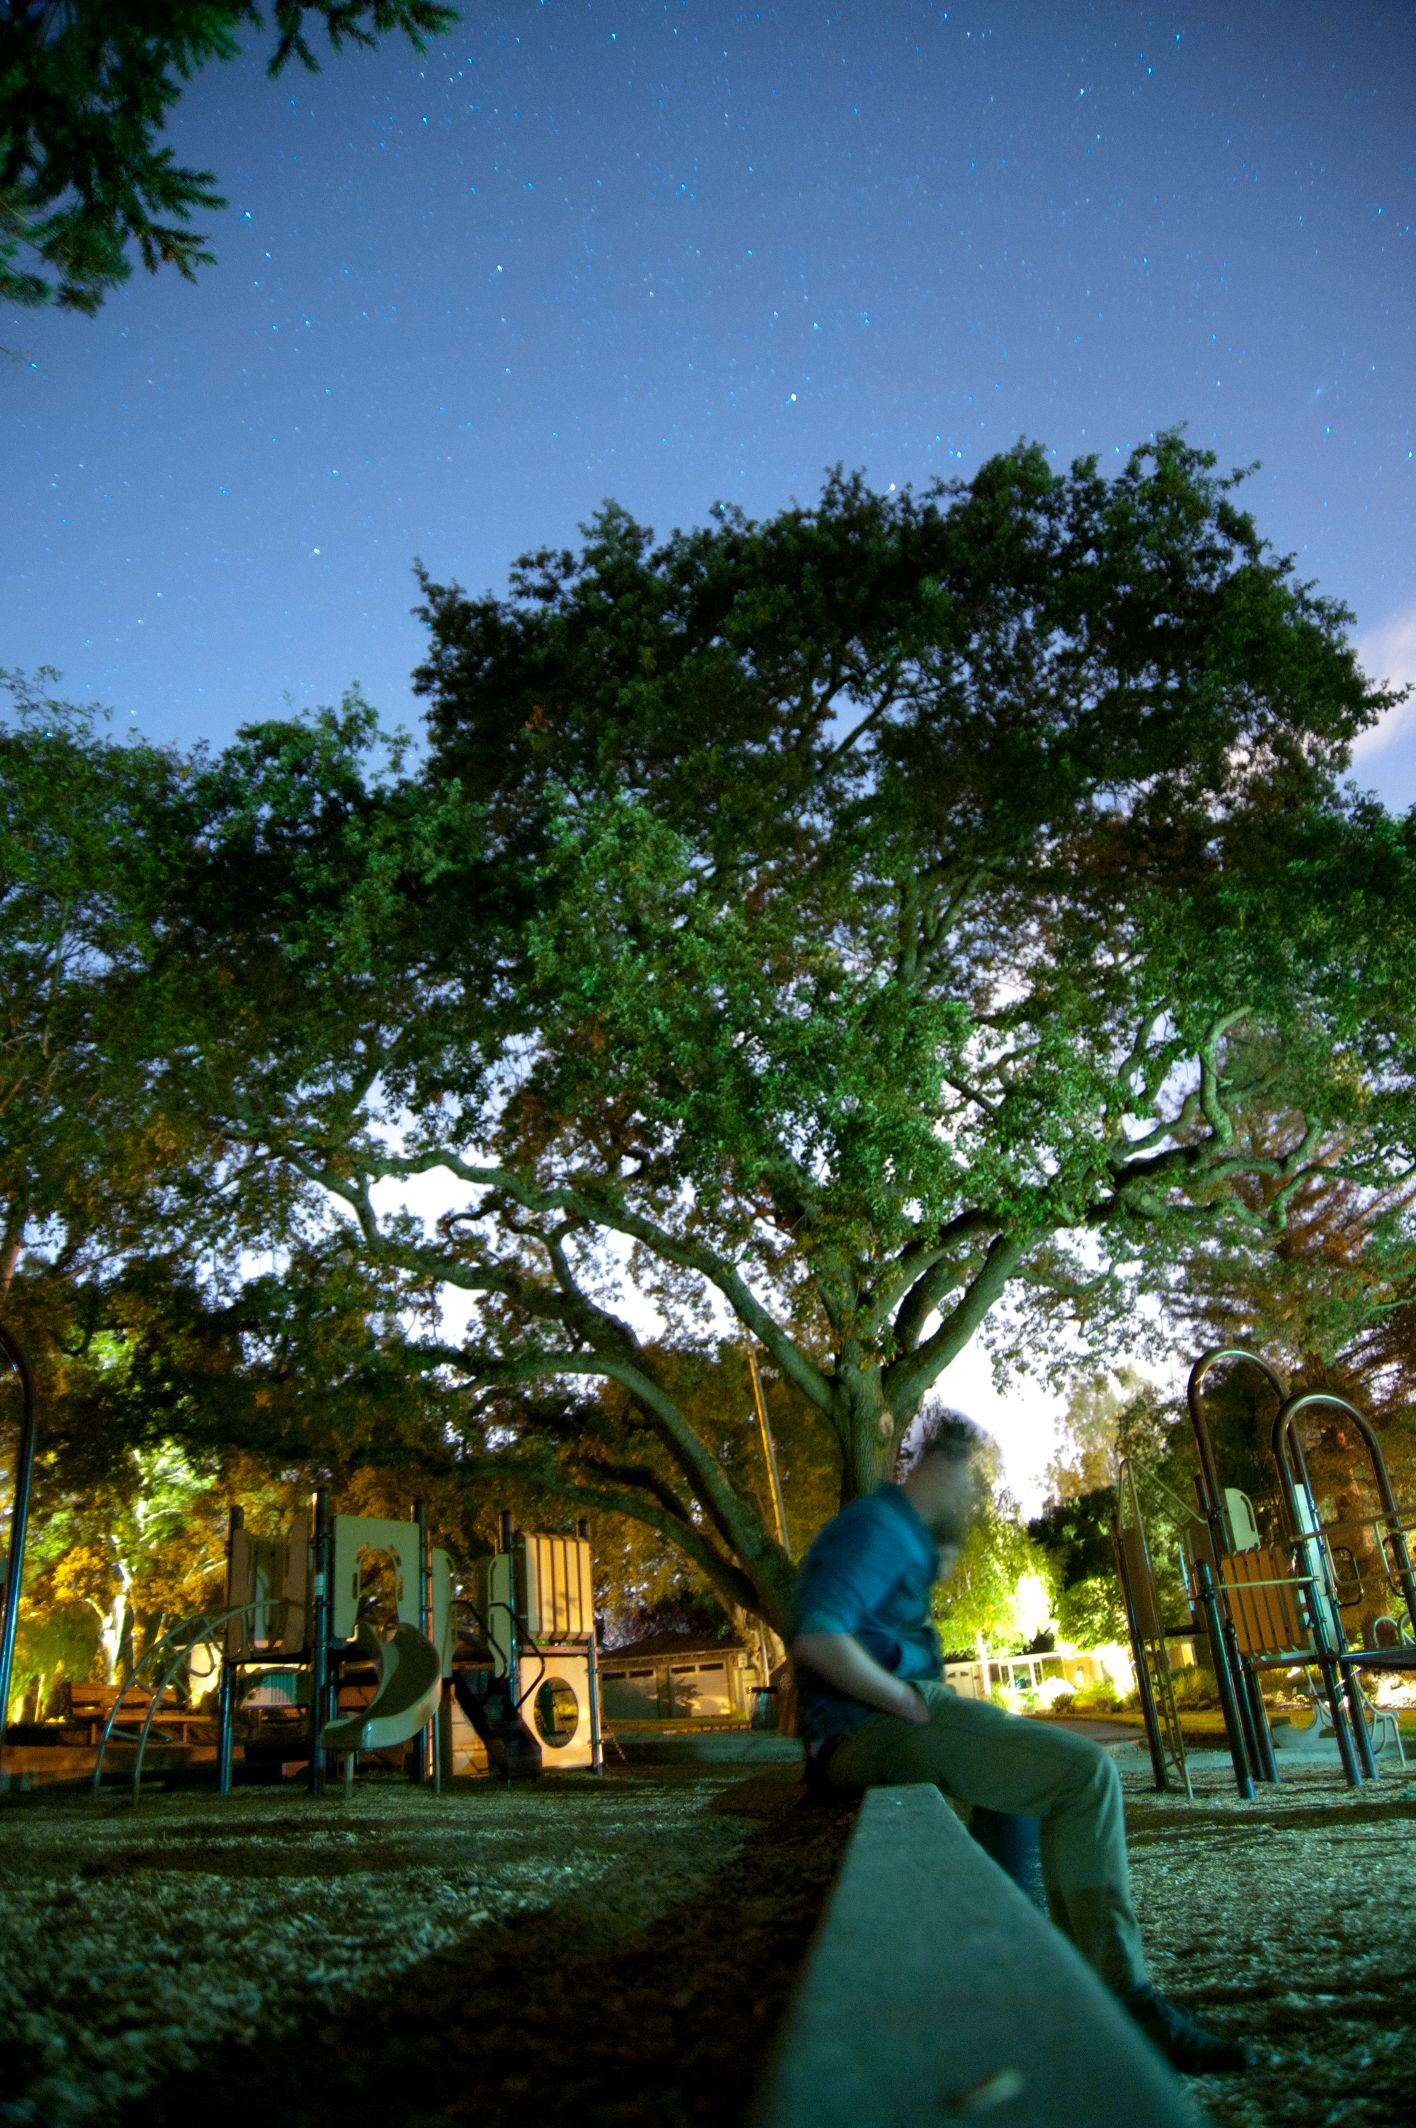 Blurred Face under a Tree.jpg